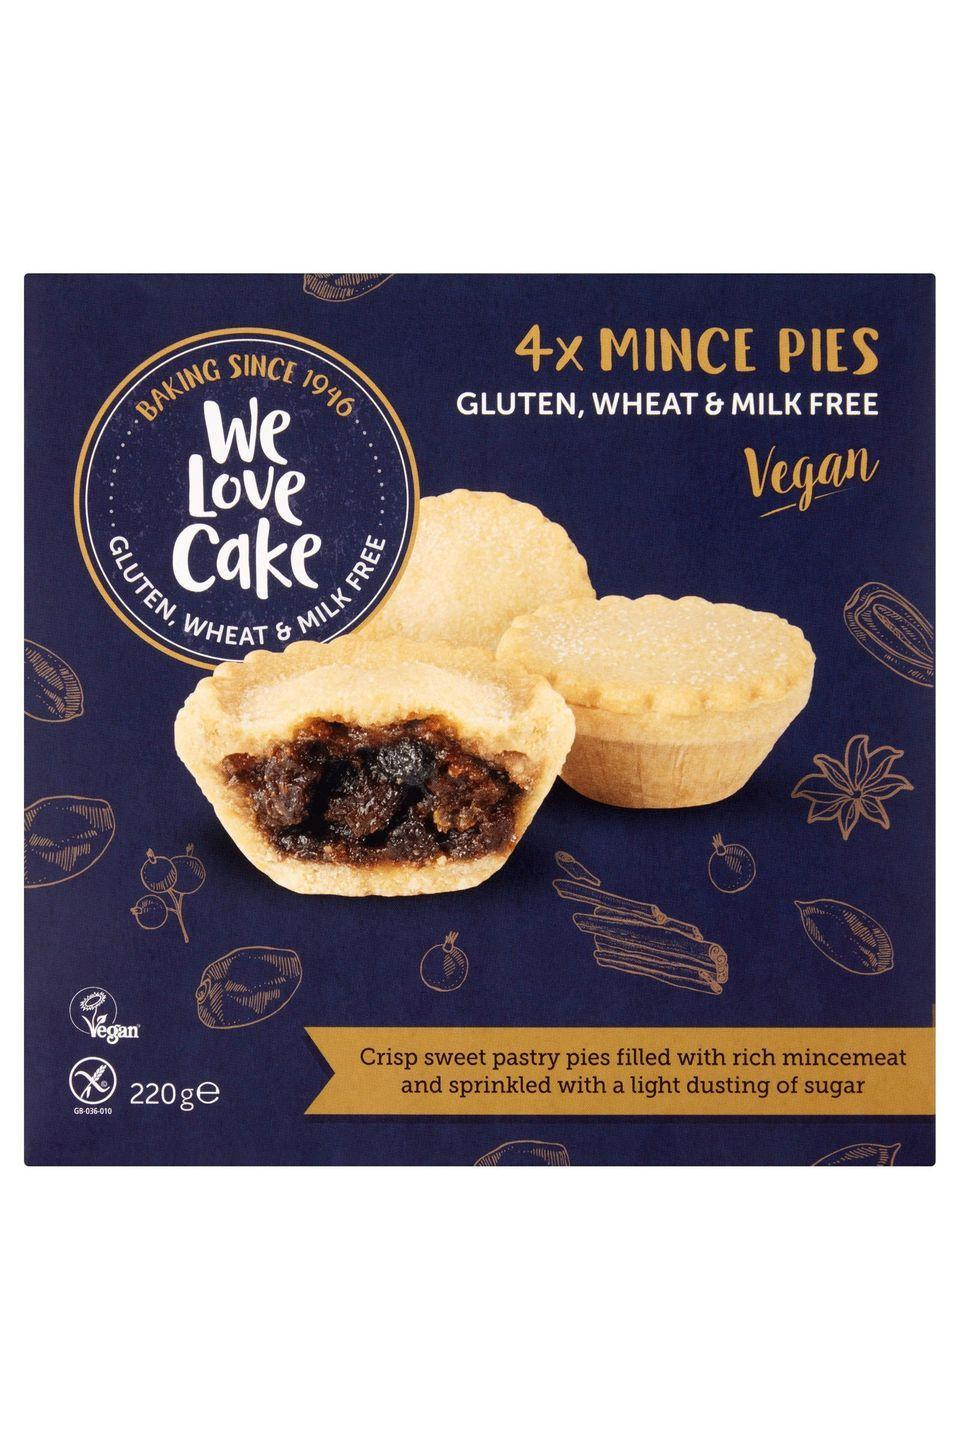 "<p><strong>Overall score: 70/100</strong></p><p>The fruity mincemeat filling and light buttery pastry aroma make this gluten-free mince pie feel traditionally festive. The moist and plump vine fruit filling is wrapped in a soft, crisp pastry, which has a gentle sweetness. However, some found the overall bite a little bland.</p><p><a class=""link rapid-noclick-resp"" href=""https://go.redirectingat.com?id=127X1599956&url=https%3A%2F%2Fwww.iceland.co.uk%2Fp%2Fwe-love-cake-4-mince-pies-220g%2F60981.html&sref=https%3A%2F%2Fwww.goodhousekeeping.com%2Fuk%2Ffood%2Ffood-reviews%2Fg23783723%2Fbuy-the-best-gluten-free-mince-pies-this-christmas%2F"" rel=""nofollow noopener"" target=""_blank"" data-ylk=""slk:BUY NOW"">BUY NOW</a> <strong>Iceland, £2 for 4 (serves 4) </strong></p>"